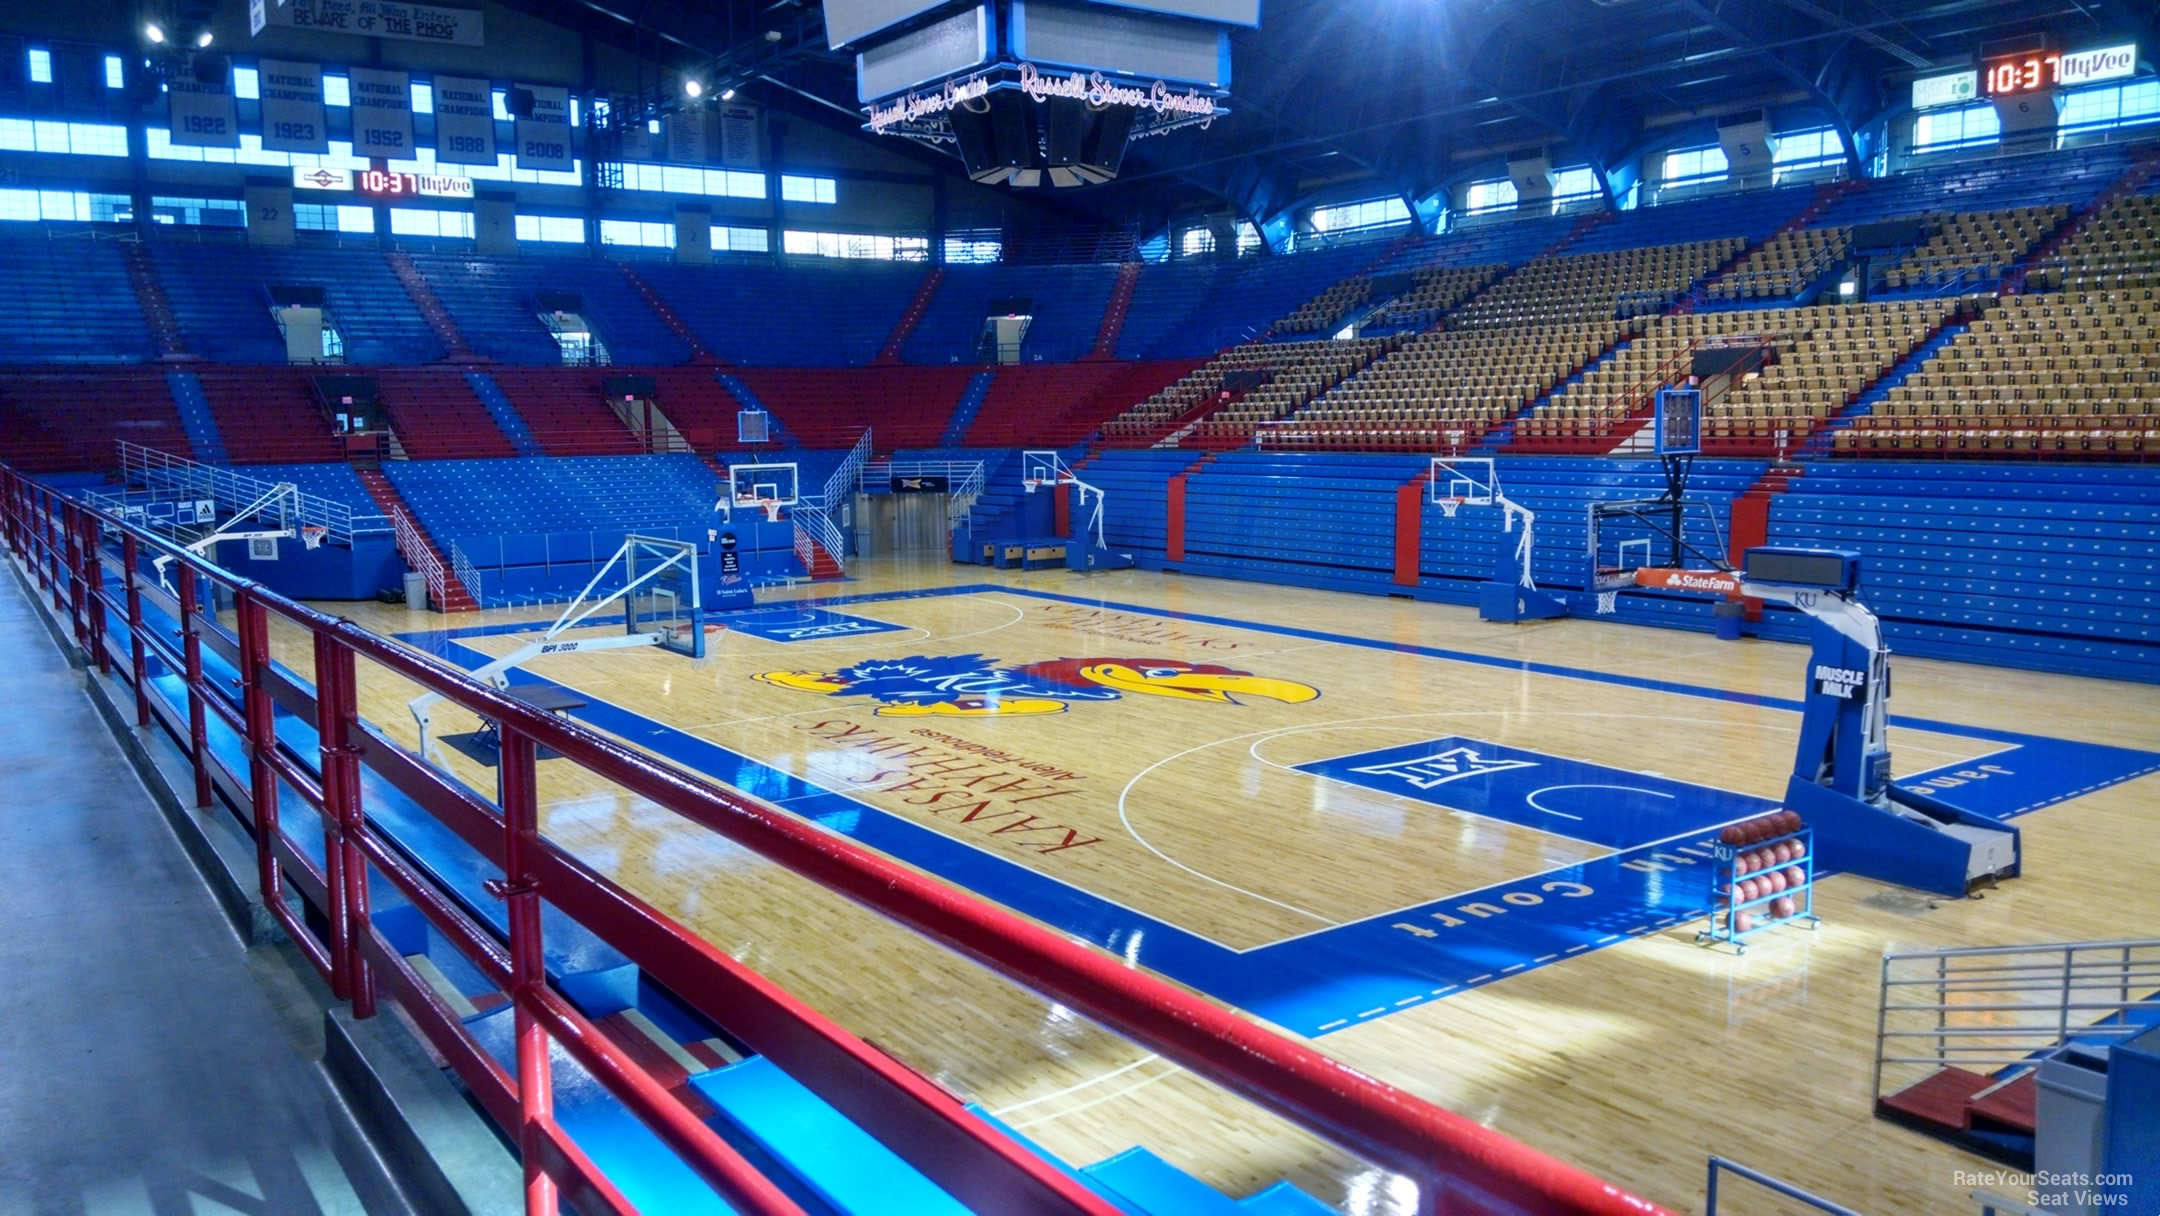 allen fieldhouse 1651 naismith drive, lawrence, ks 66044 - allen fieldhouse is located on the  campus of the university of kansas in southwest lawrence it is the home of the.